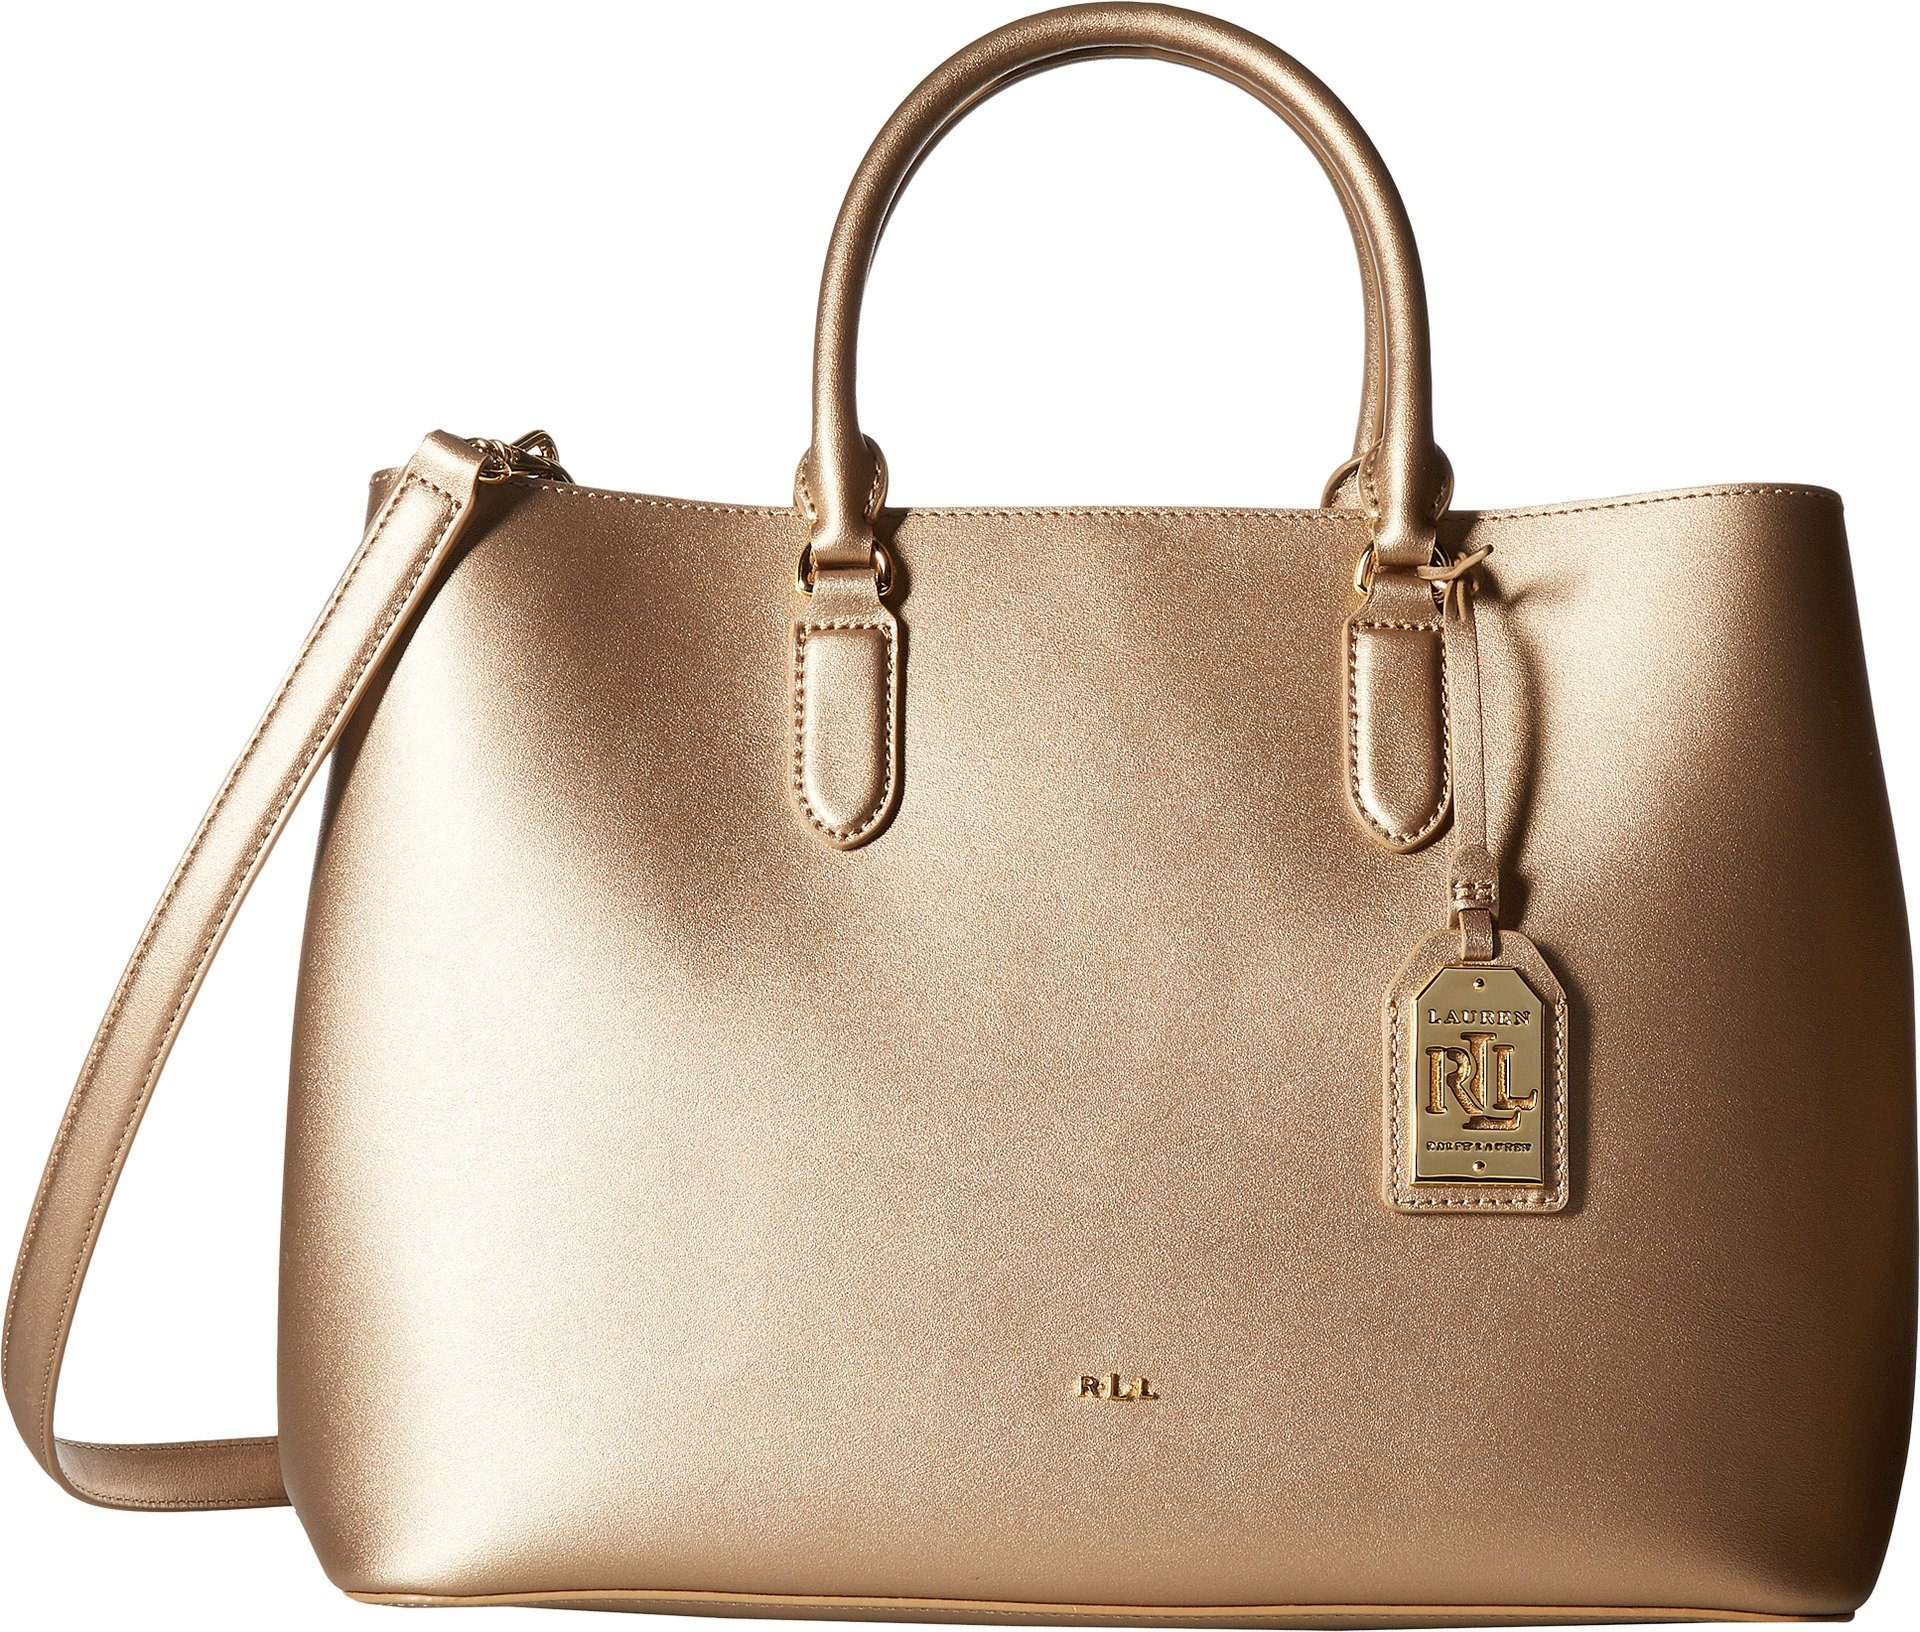 LAUREN Ralph Lauren Women's Dryden Marcy Tote Medium Gold/Birch One Size